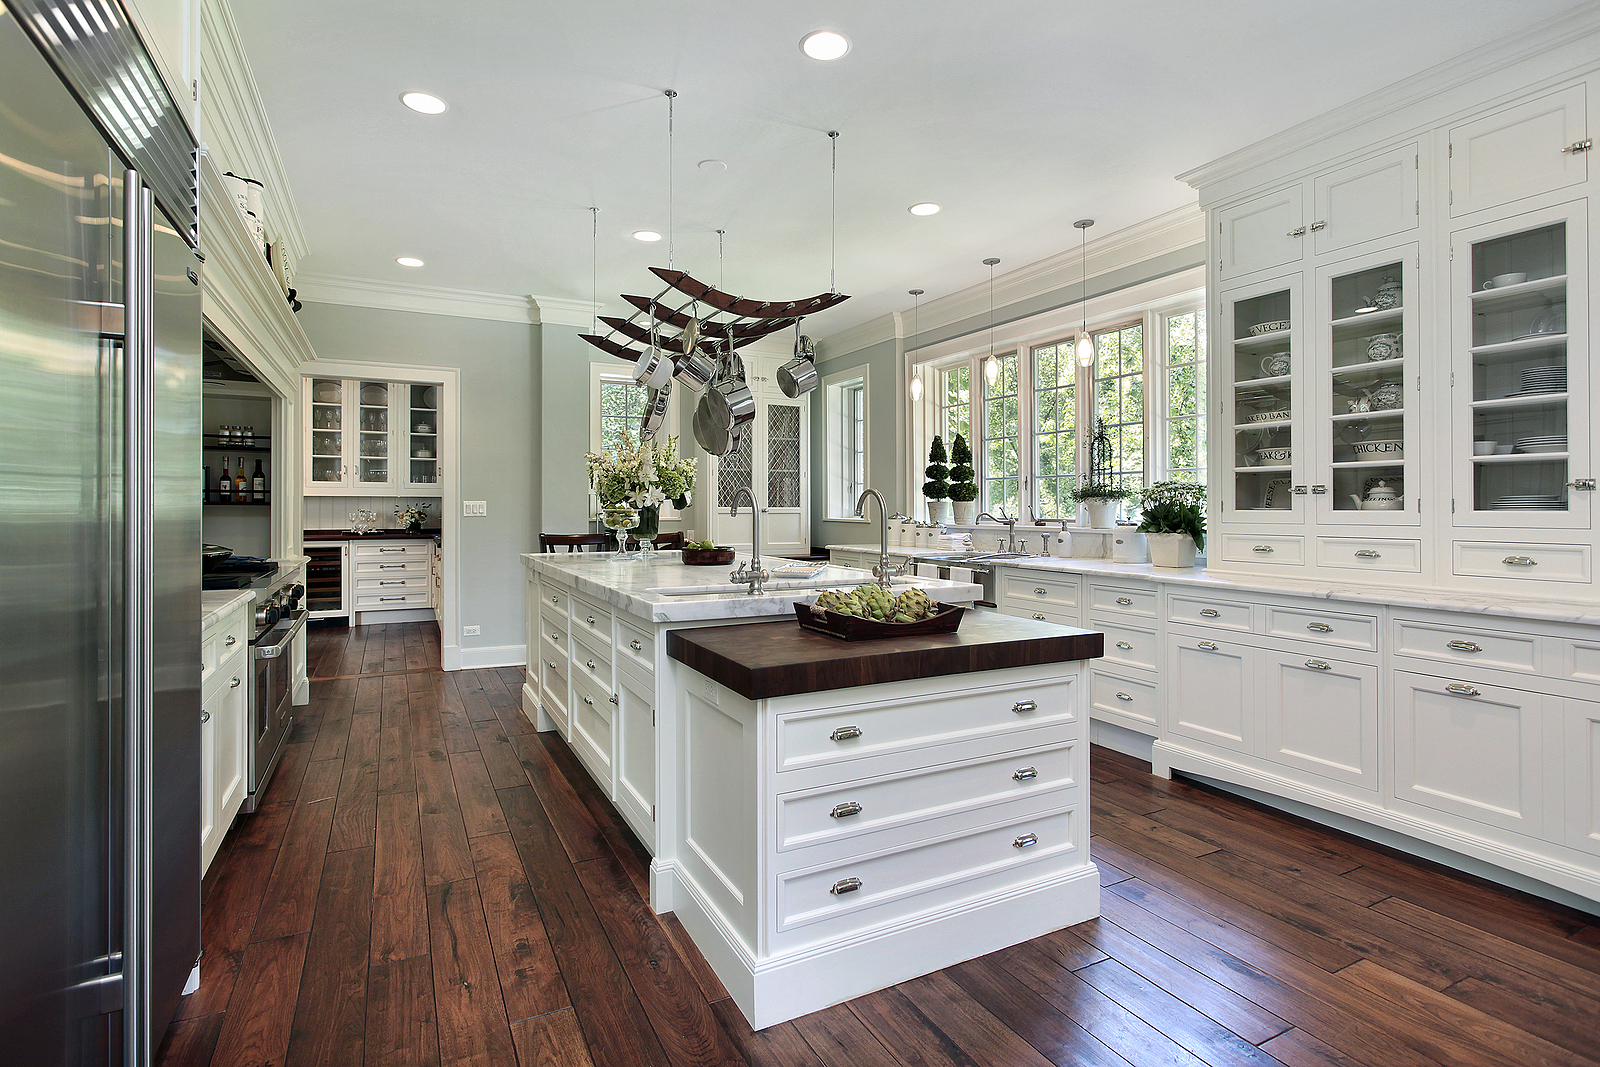 bigstock-Kitchen-in-luxury-home-with-wh-